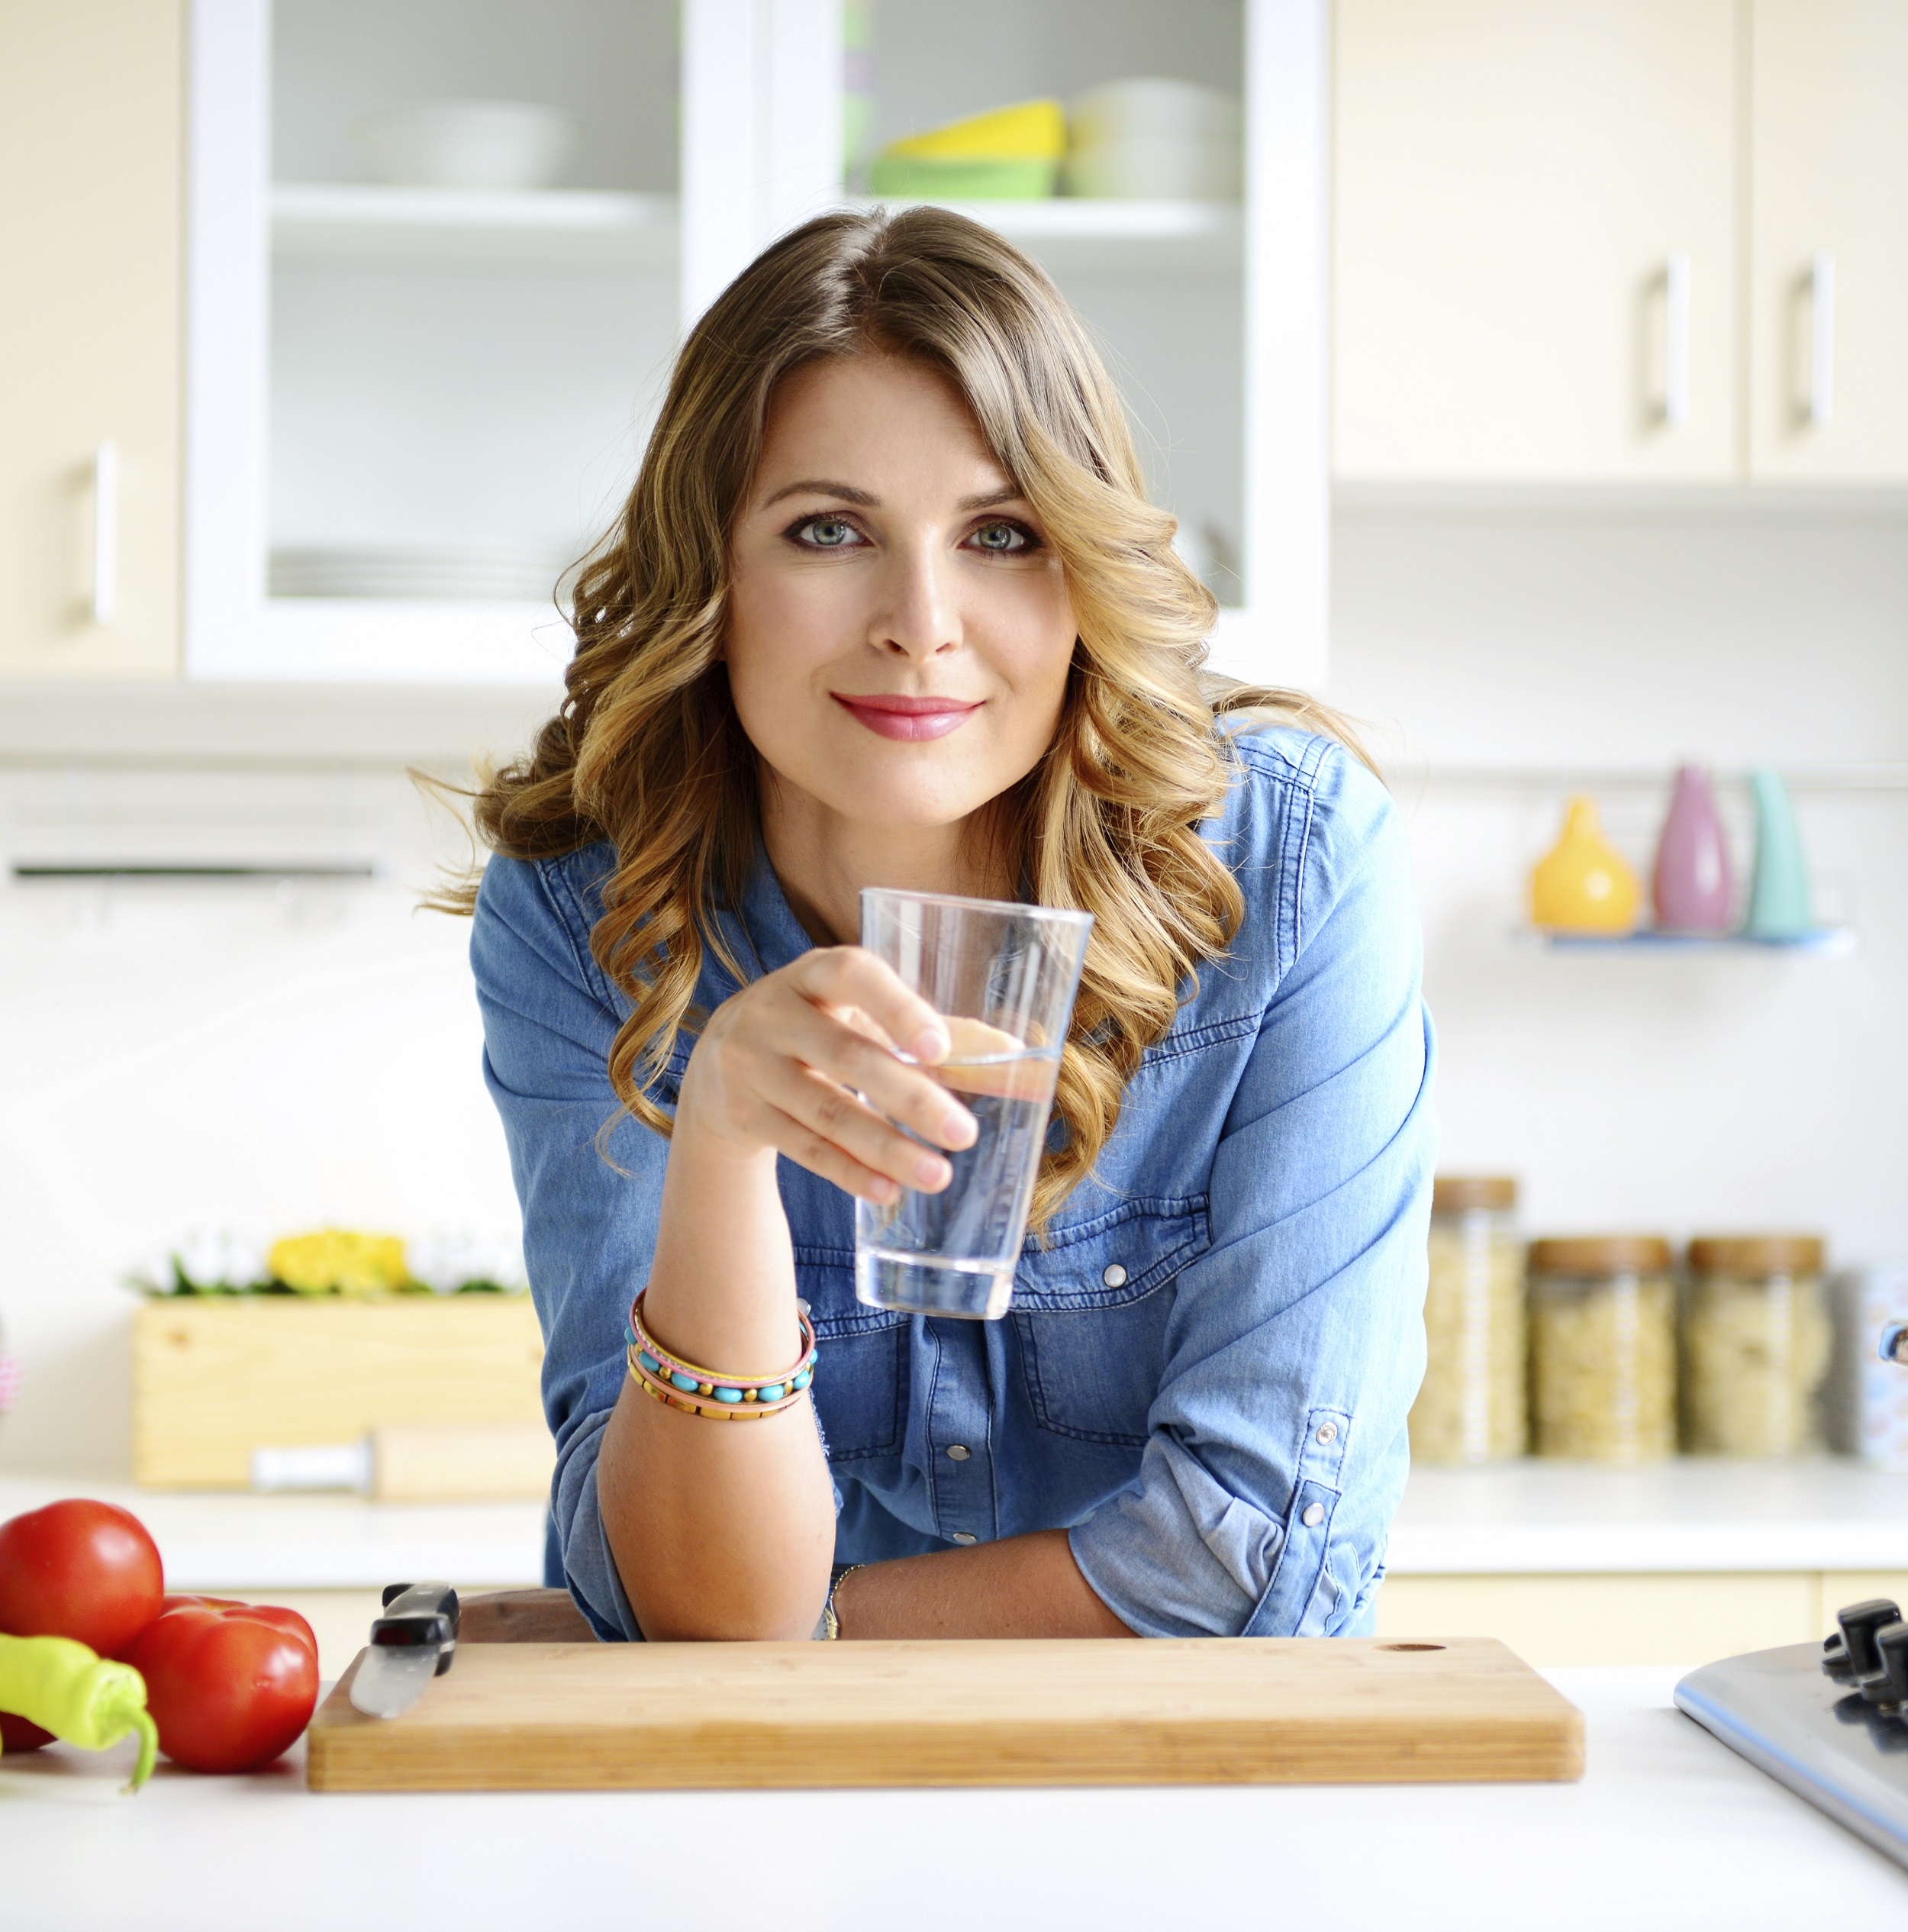 Woman in Kitchen web square.jpg